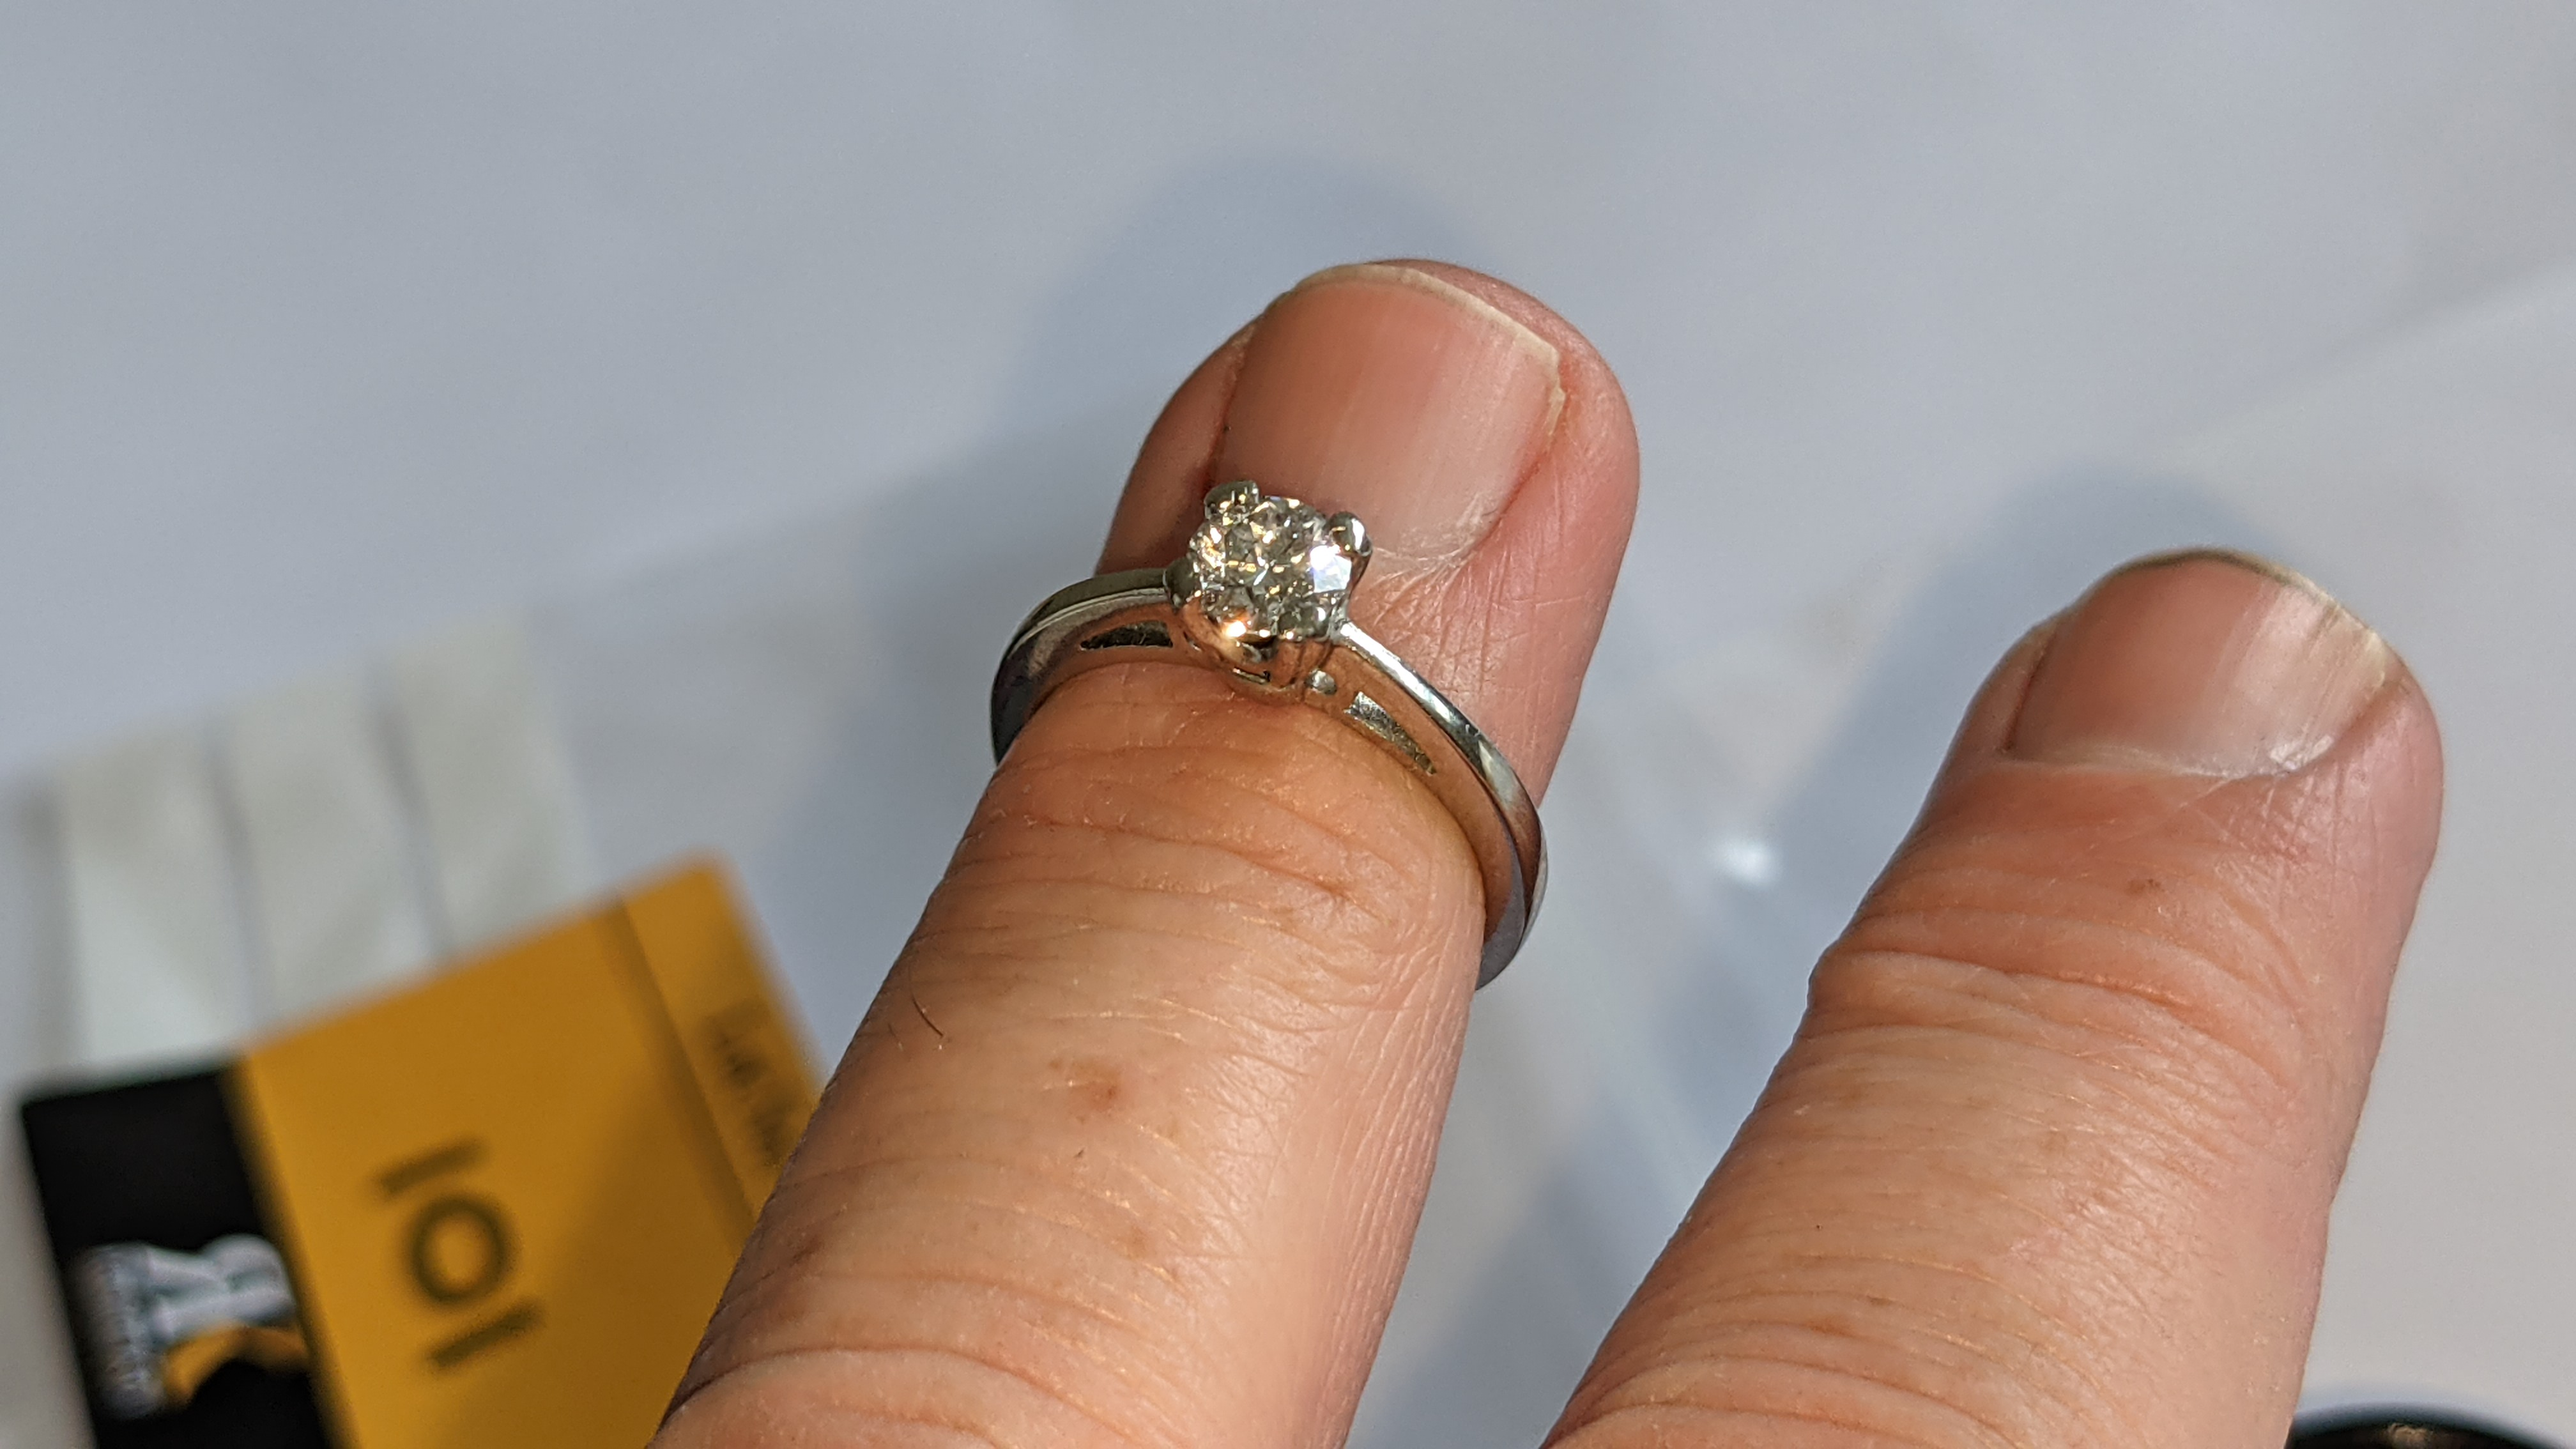 Platinum 950 ring with 0.50ct diamond. Includes diamond report/certification indicating the central - Image 13 of 25